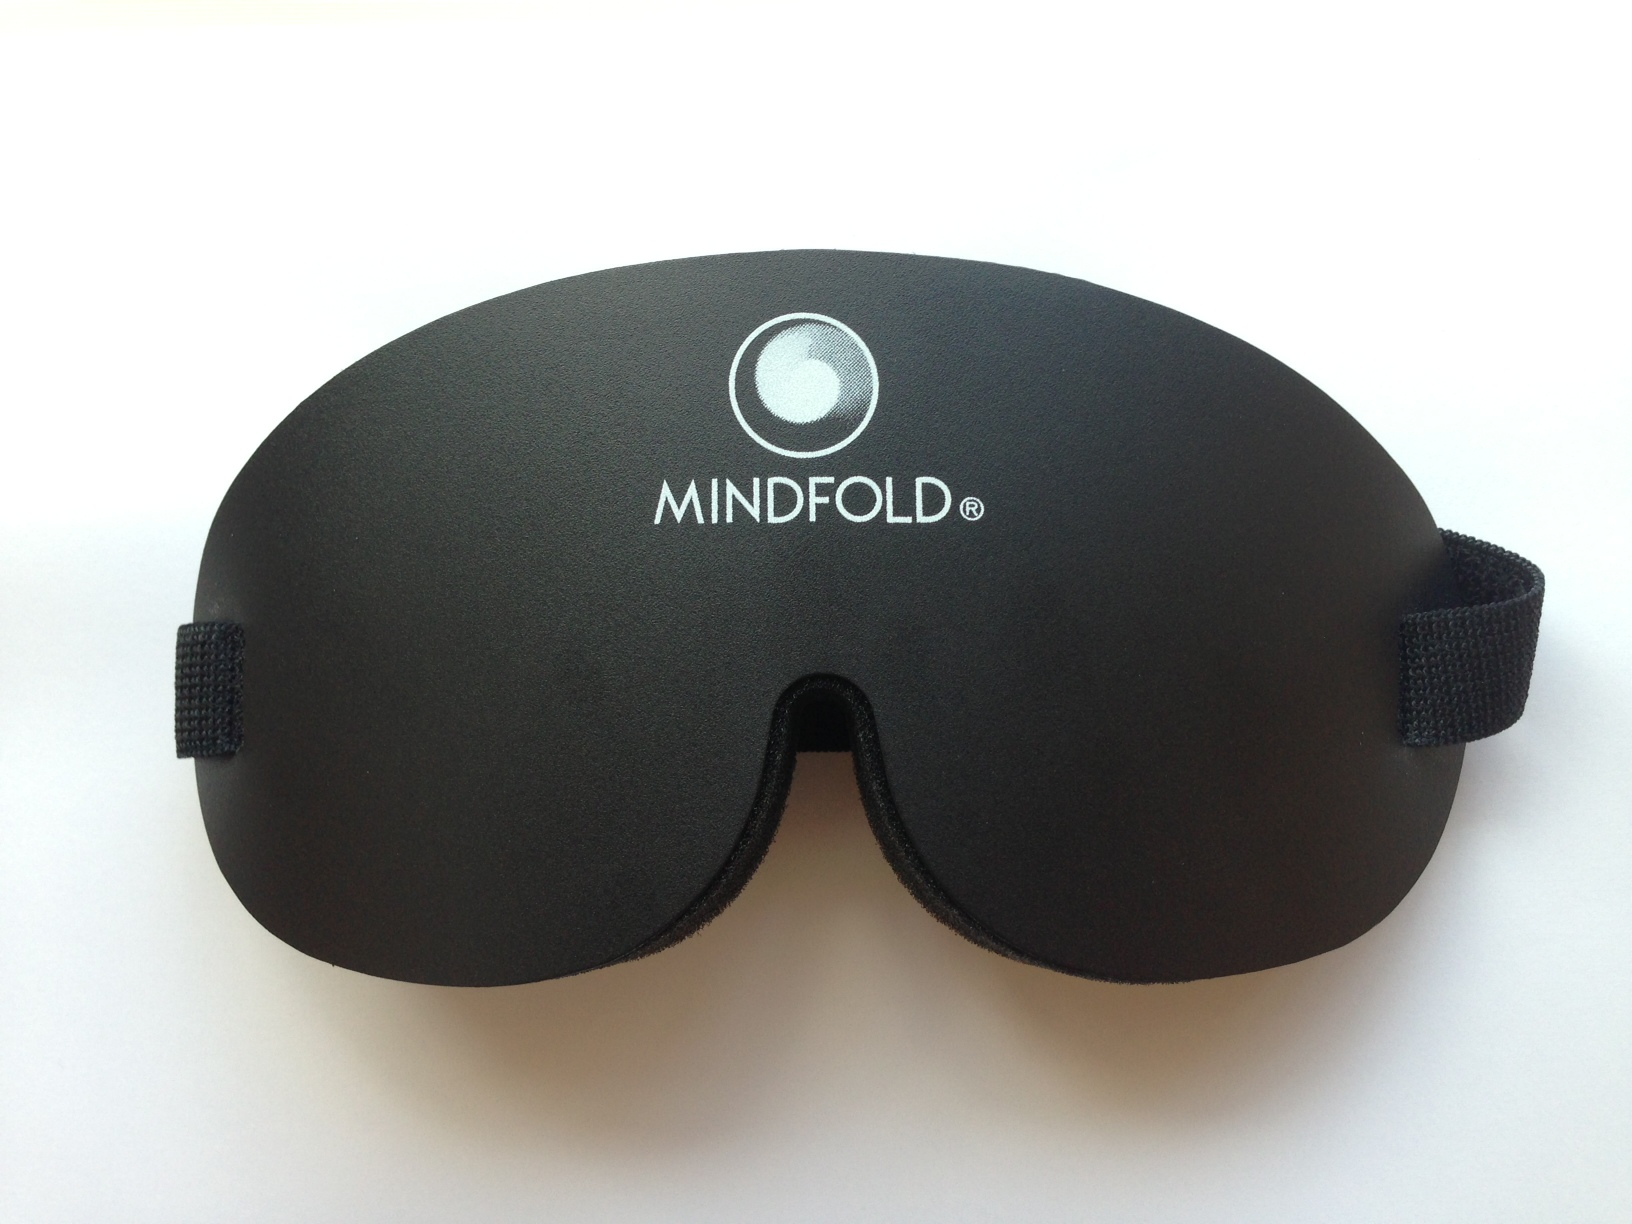 Mindfold-digiwell-1